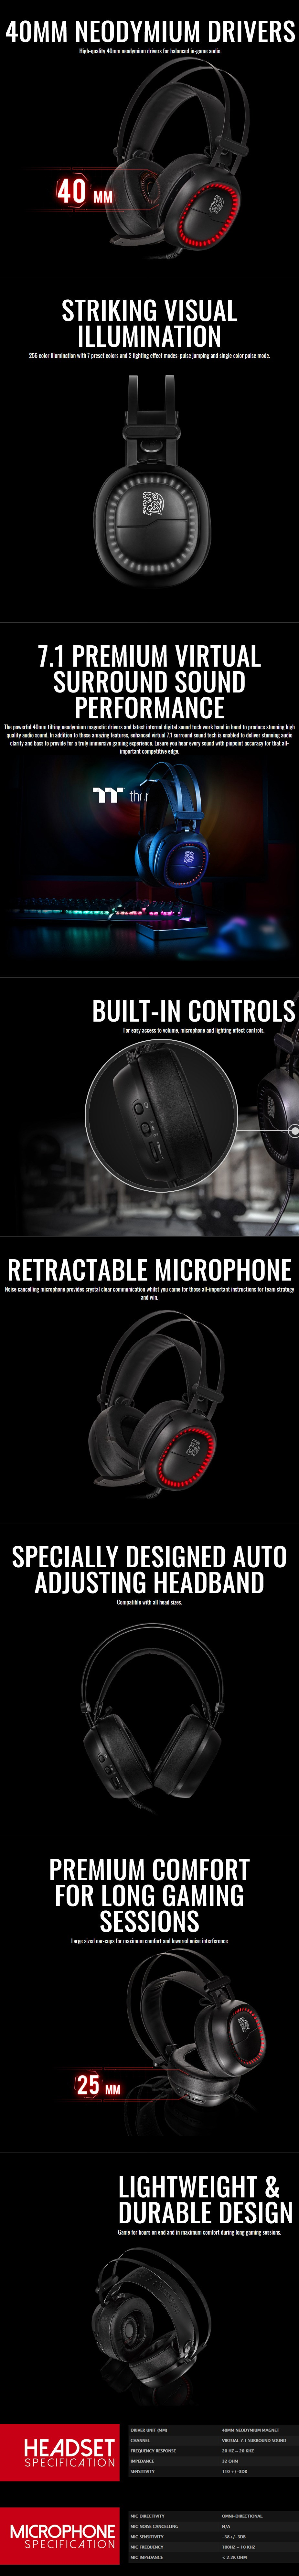 Thermaltake TteSPORTS Shock Pro RGB 7.1 USB Gaming Headset - Overview 1